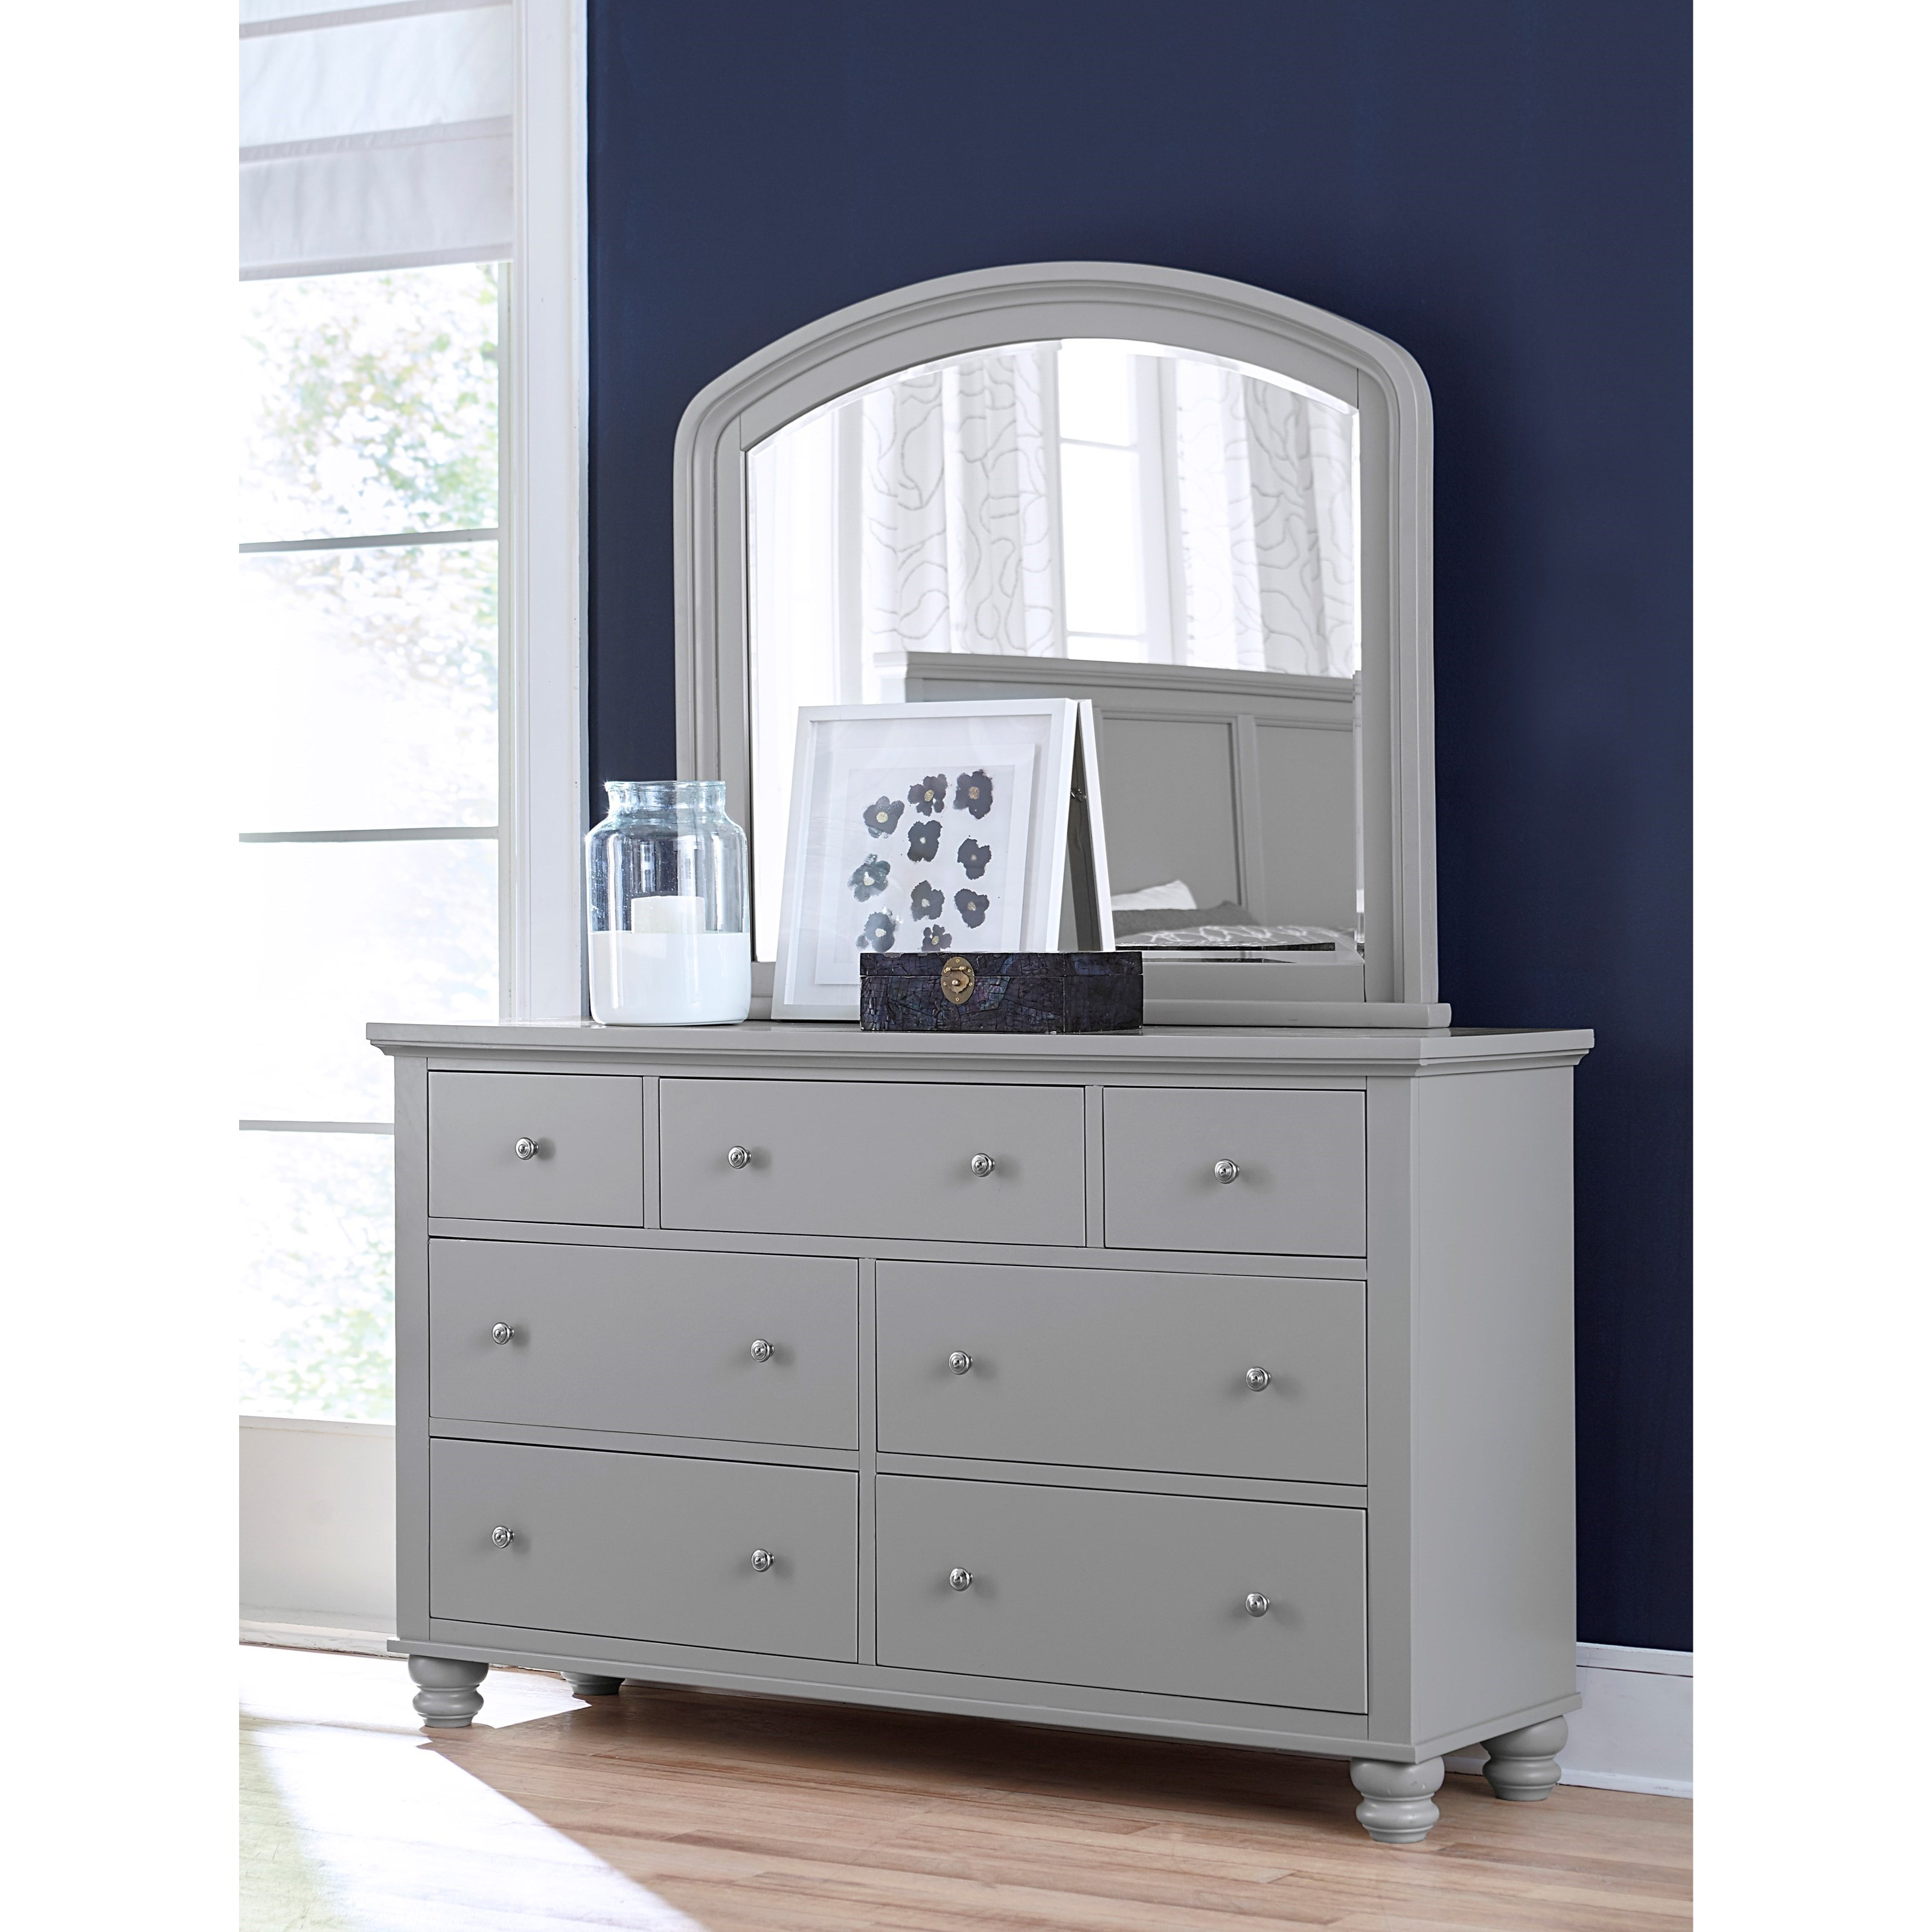 Cambridge Double Dresser and Mirror Combo by Hills of Aspen at Ruby Gordon Home